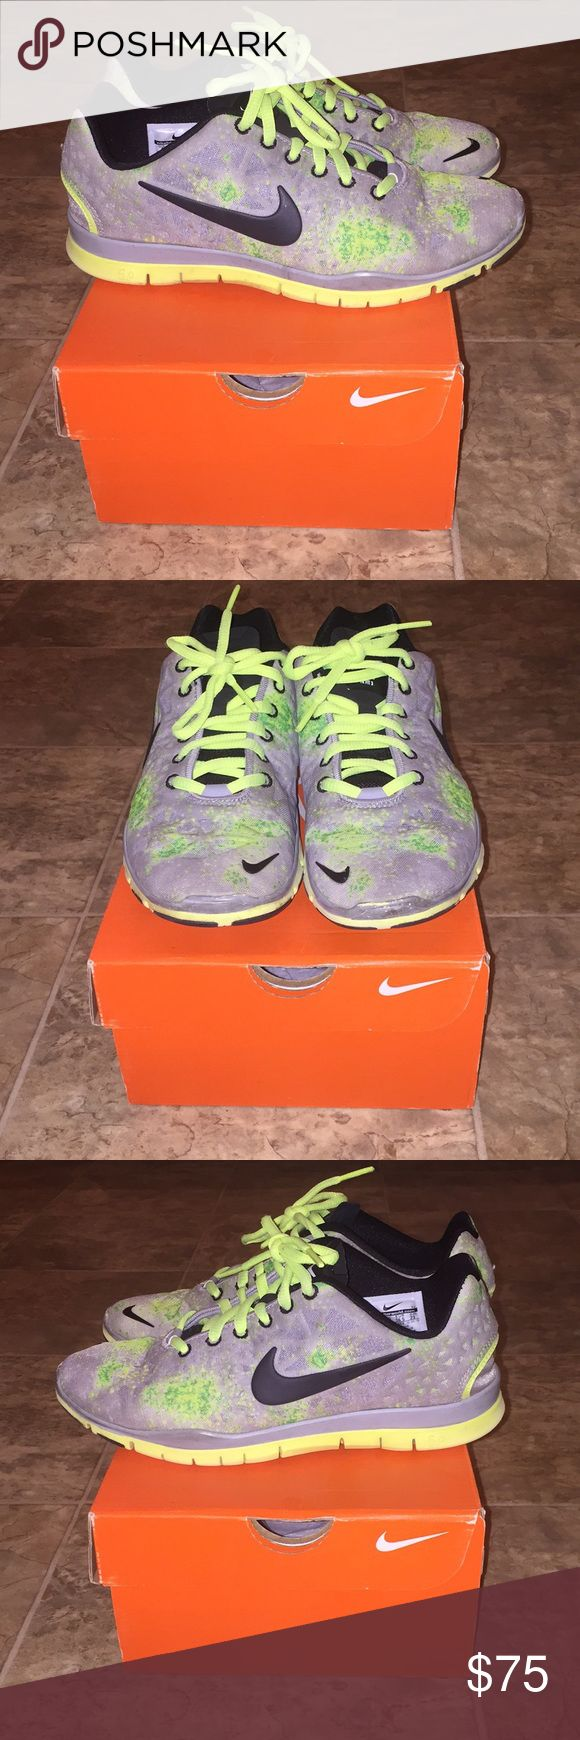 Women's Nike Free TR Sneakers Women's Nike Free TR Fit Training Sneakers. Women's Size: 6 | Color: Stadium Grey/Black/Volt | Condition: Great. These Nike training shoes are lightweight, comfy, and fashionable! They have a mesh upper, which also makes them very breathable. The color works for all seasons and adds a pop of color (volt/highlighter yellow) to athletic and casual ensembles. There's a small bend in the toes (pictured) that's much less noticeable when the shoes are on. Nike Shoes…